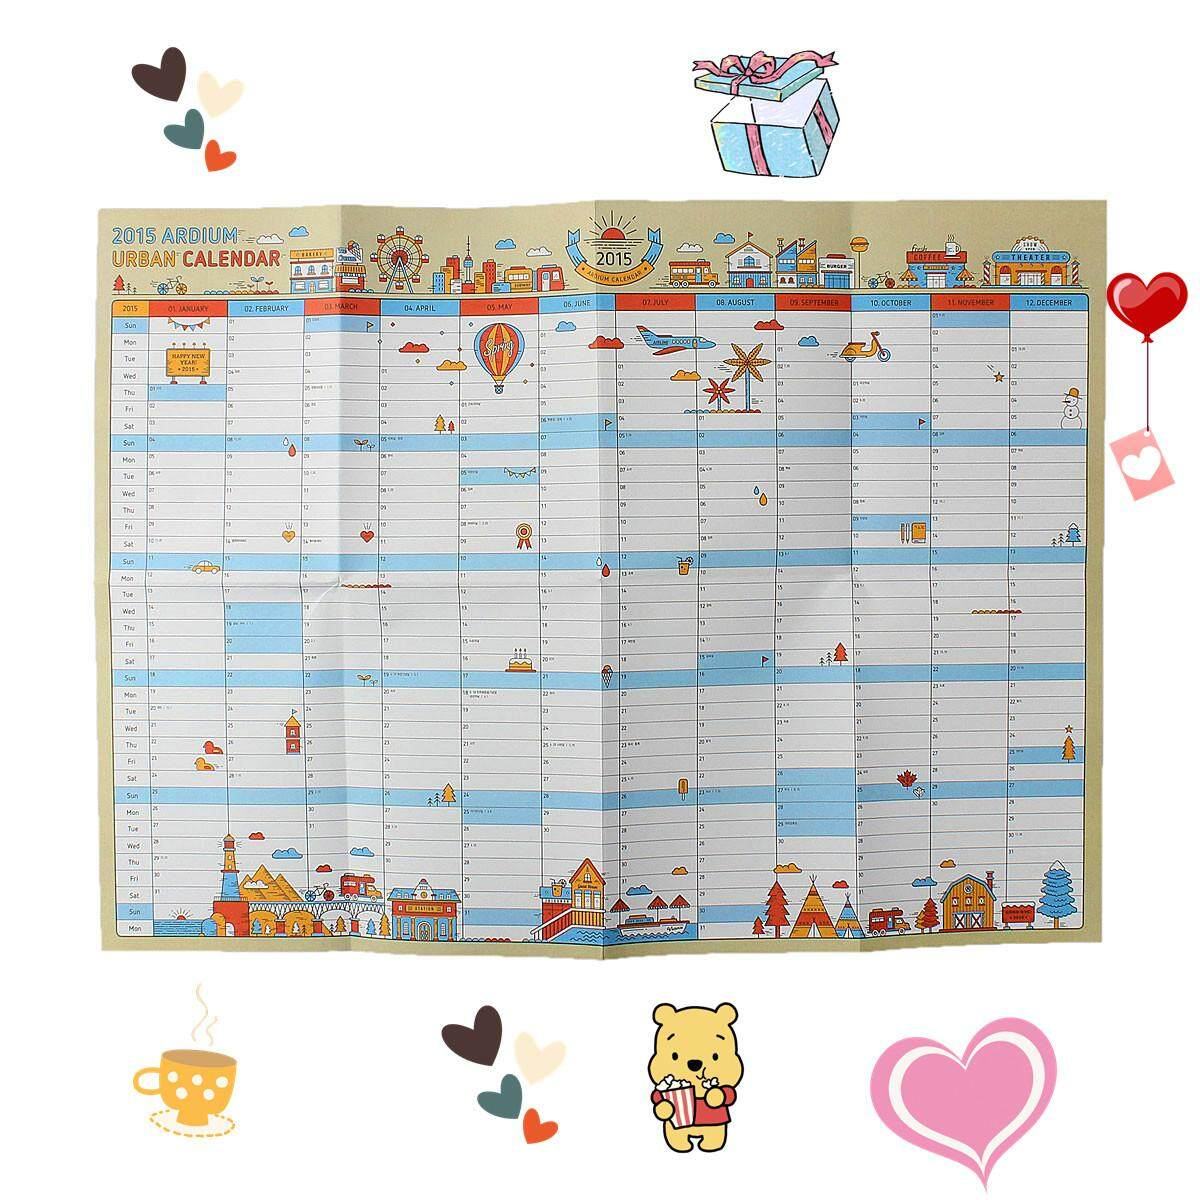 Poster Style Wall Calendar Planner Schedule Journal Agenda Paper Table By Paidbang.